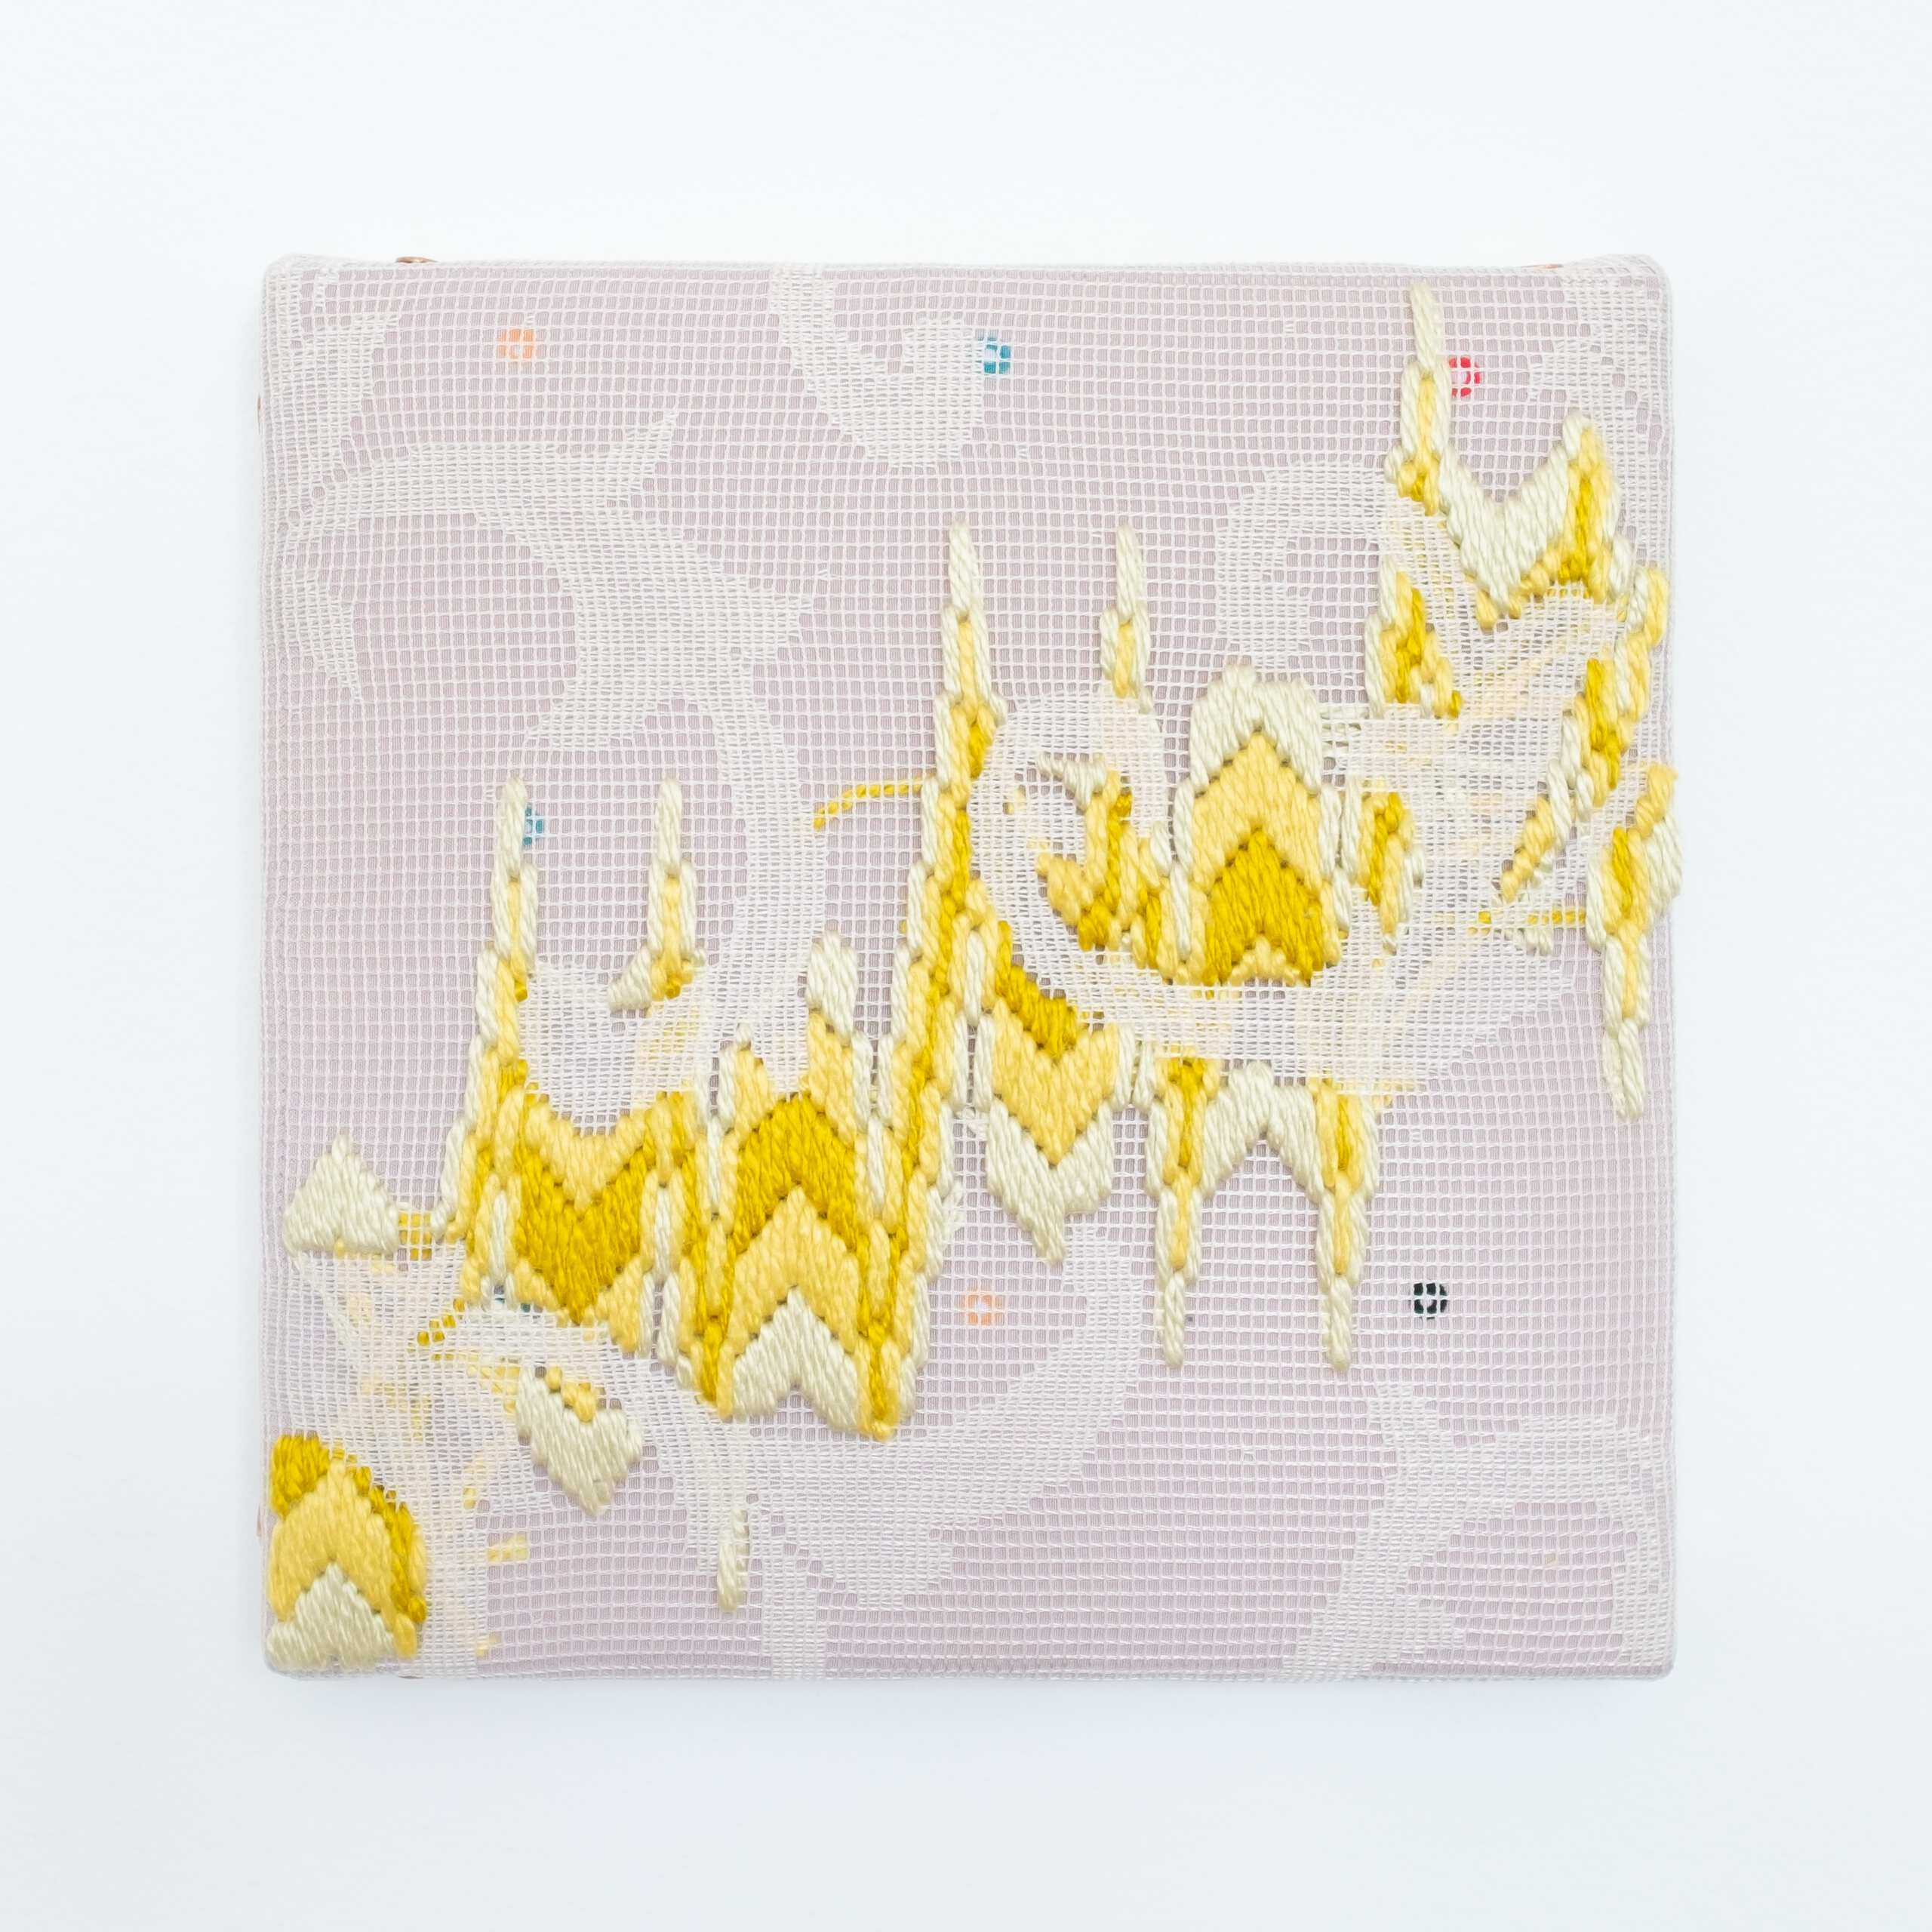 Triple-layer gather-gusset [yellow chevrons], Hand-embroidered silk on lace over fabric, 2020